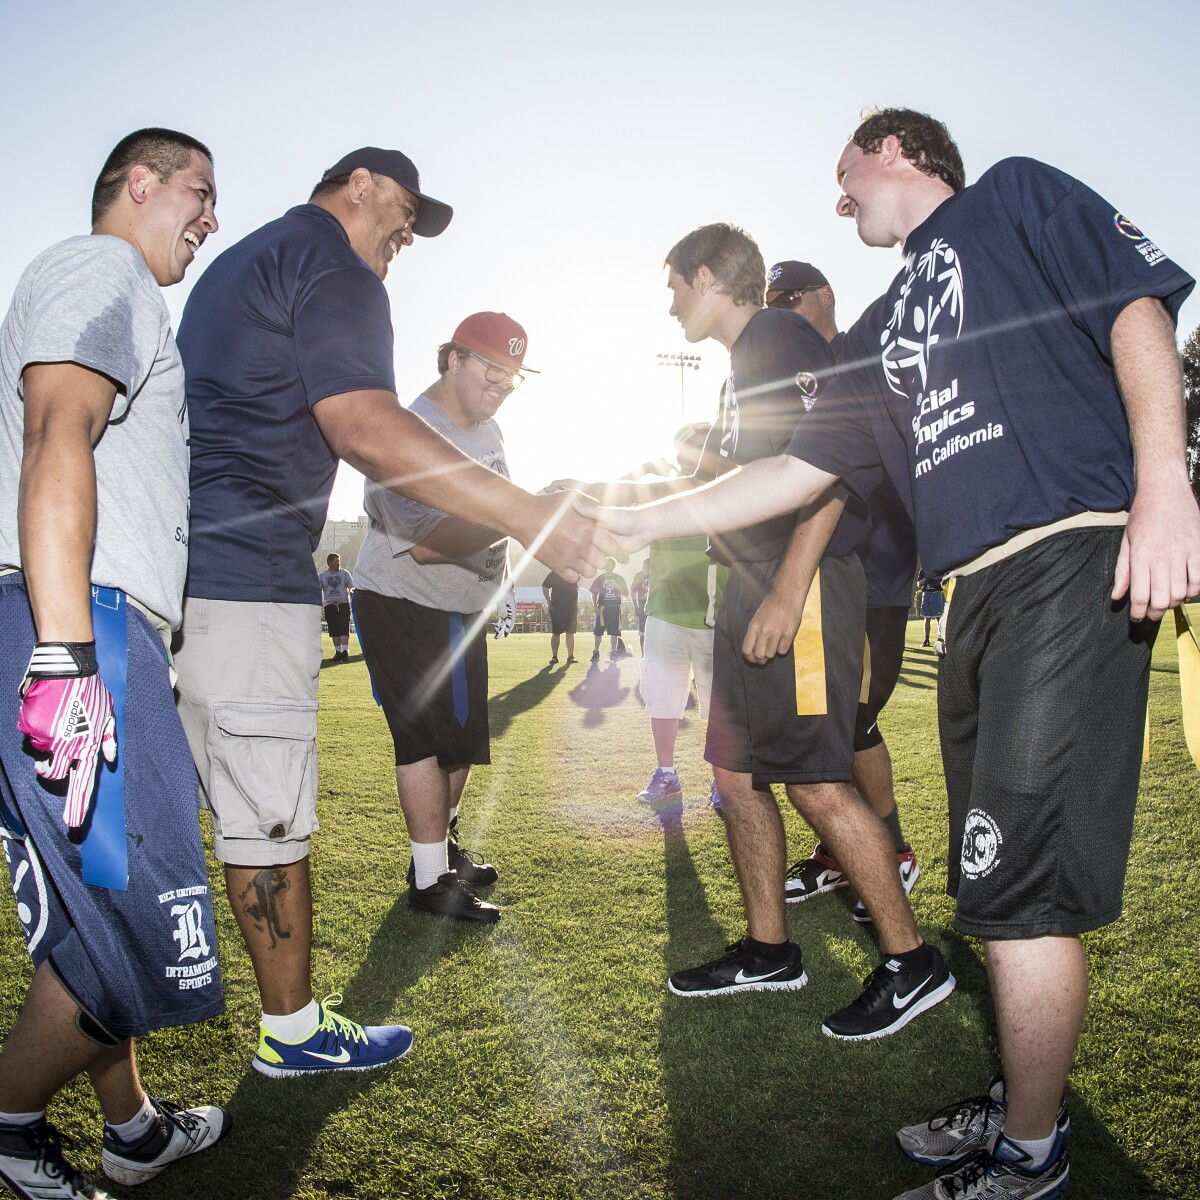 Flag Football Competitors Shake Hands on the Field During a Unified Sports Experience Event at the 2015 World Summer Games in Los Angeles, California